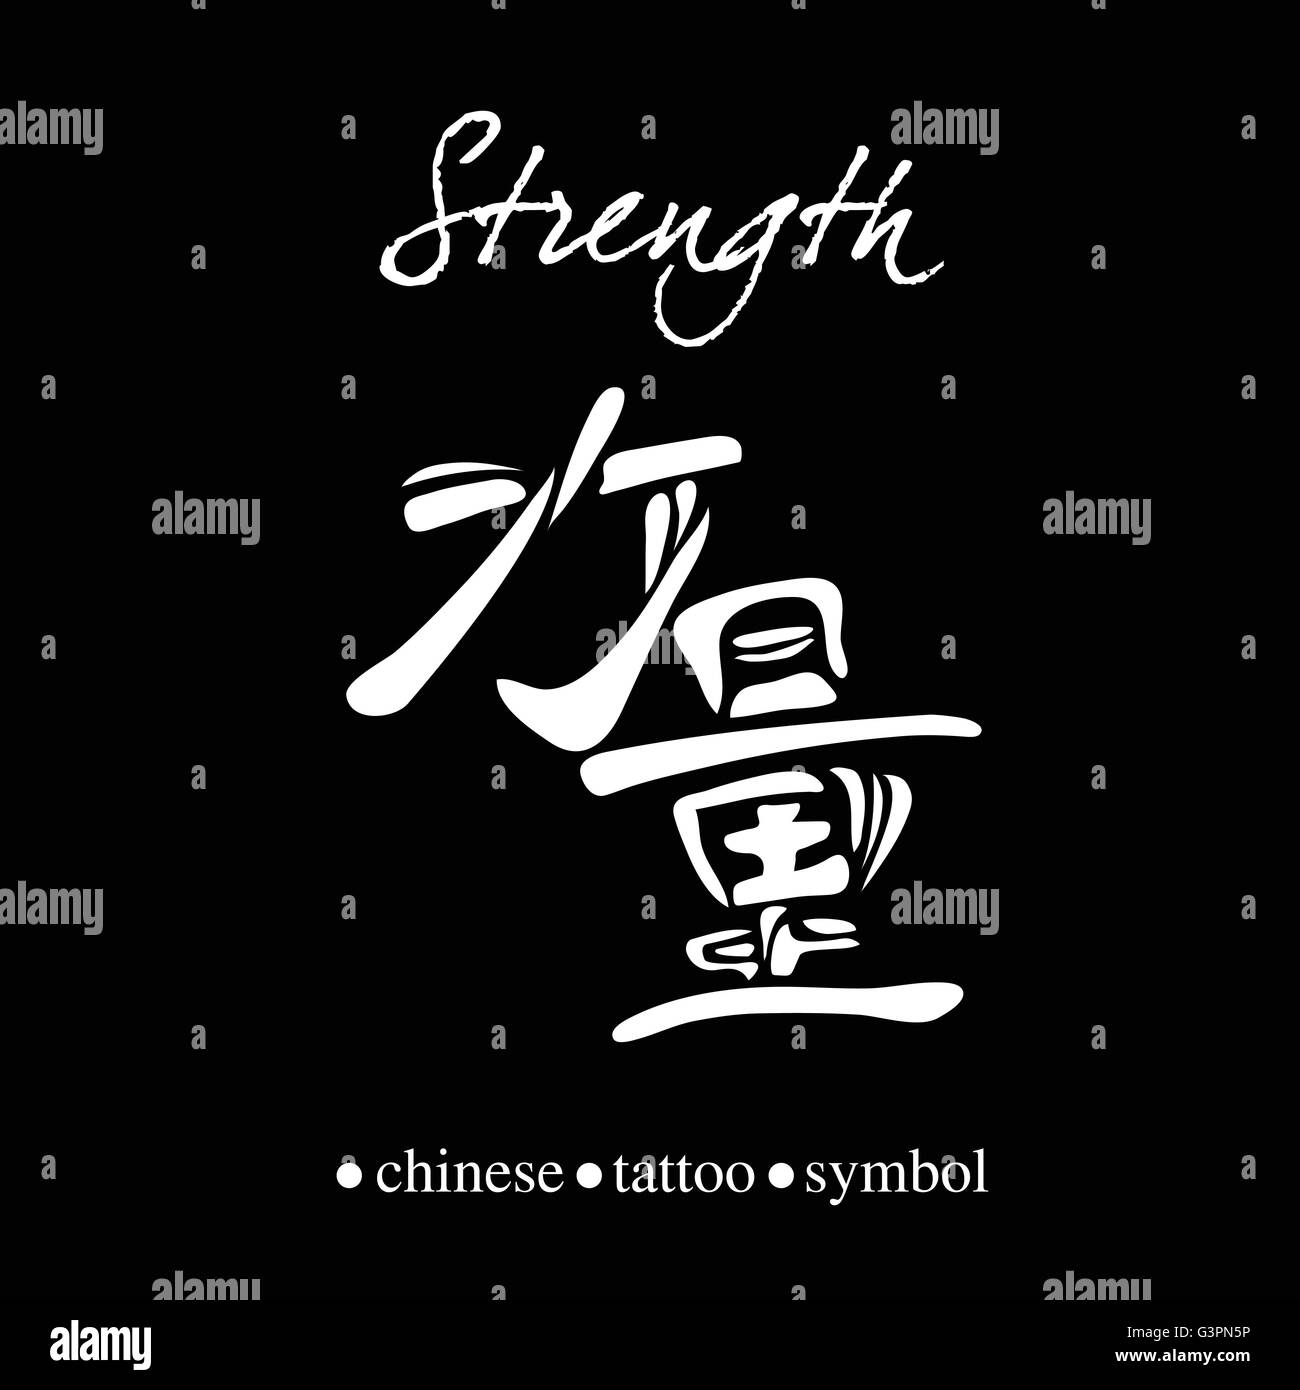 Chinese character calligraphy for strength or power stock vector chinese character calligraphy for strength or power buycottarizona Gallery